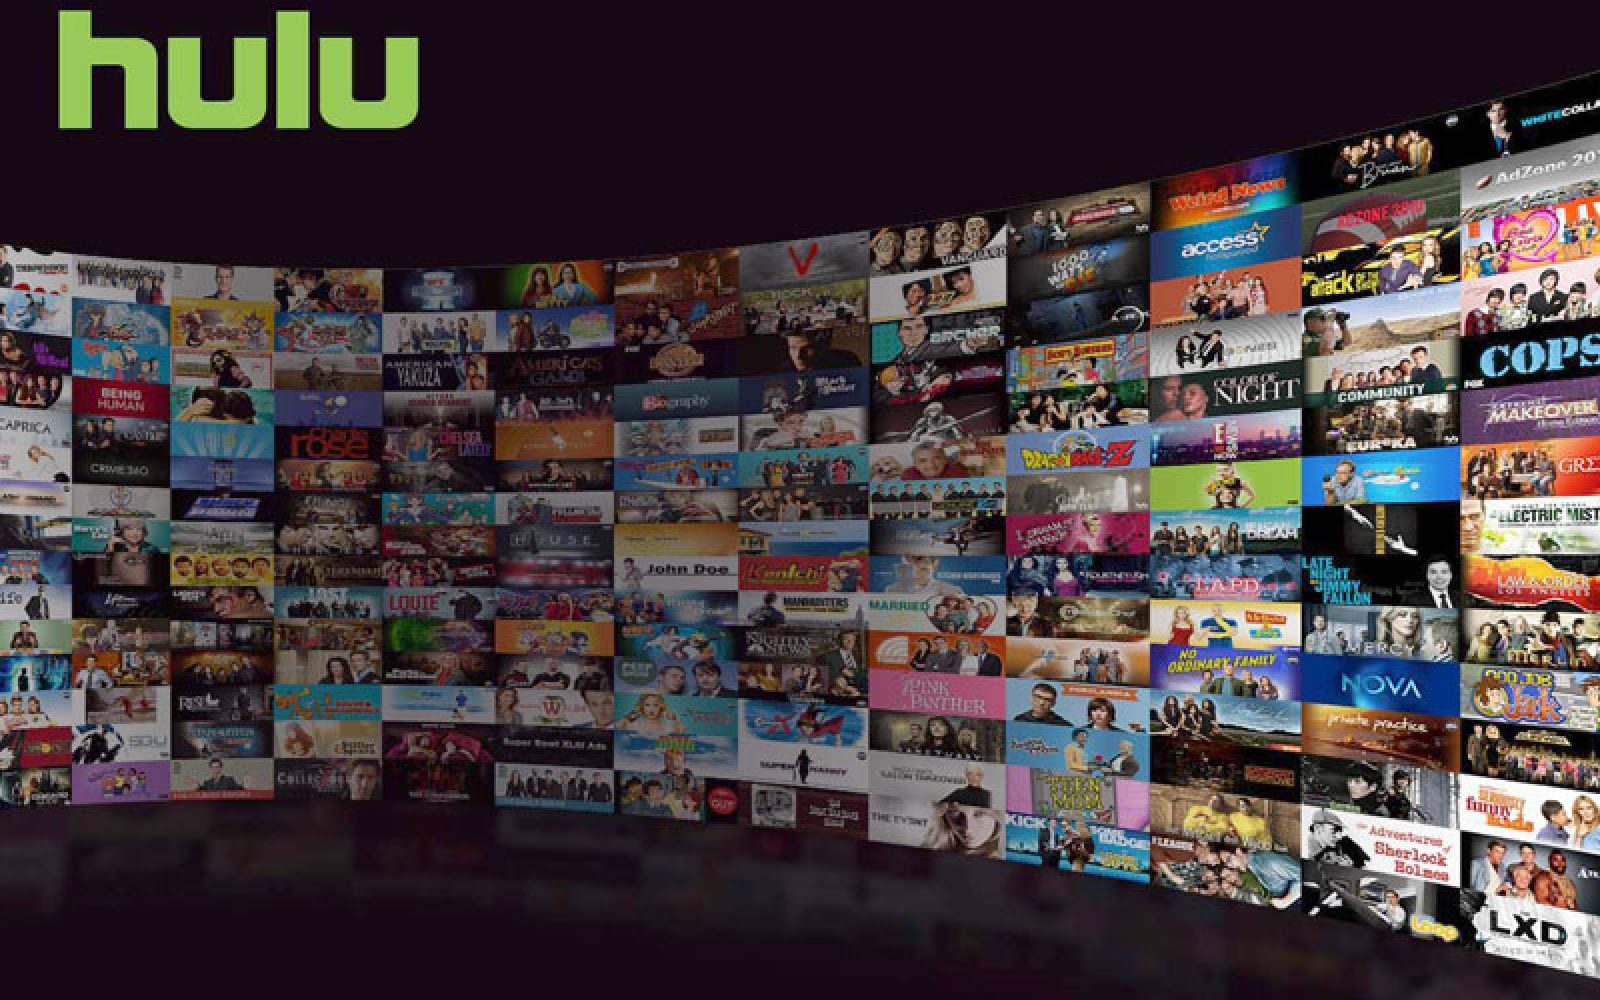 Hulu lands deals to bring FOX, ABC, Disney, ESPN & more to